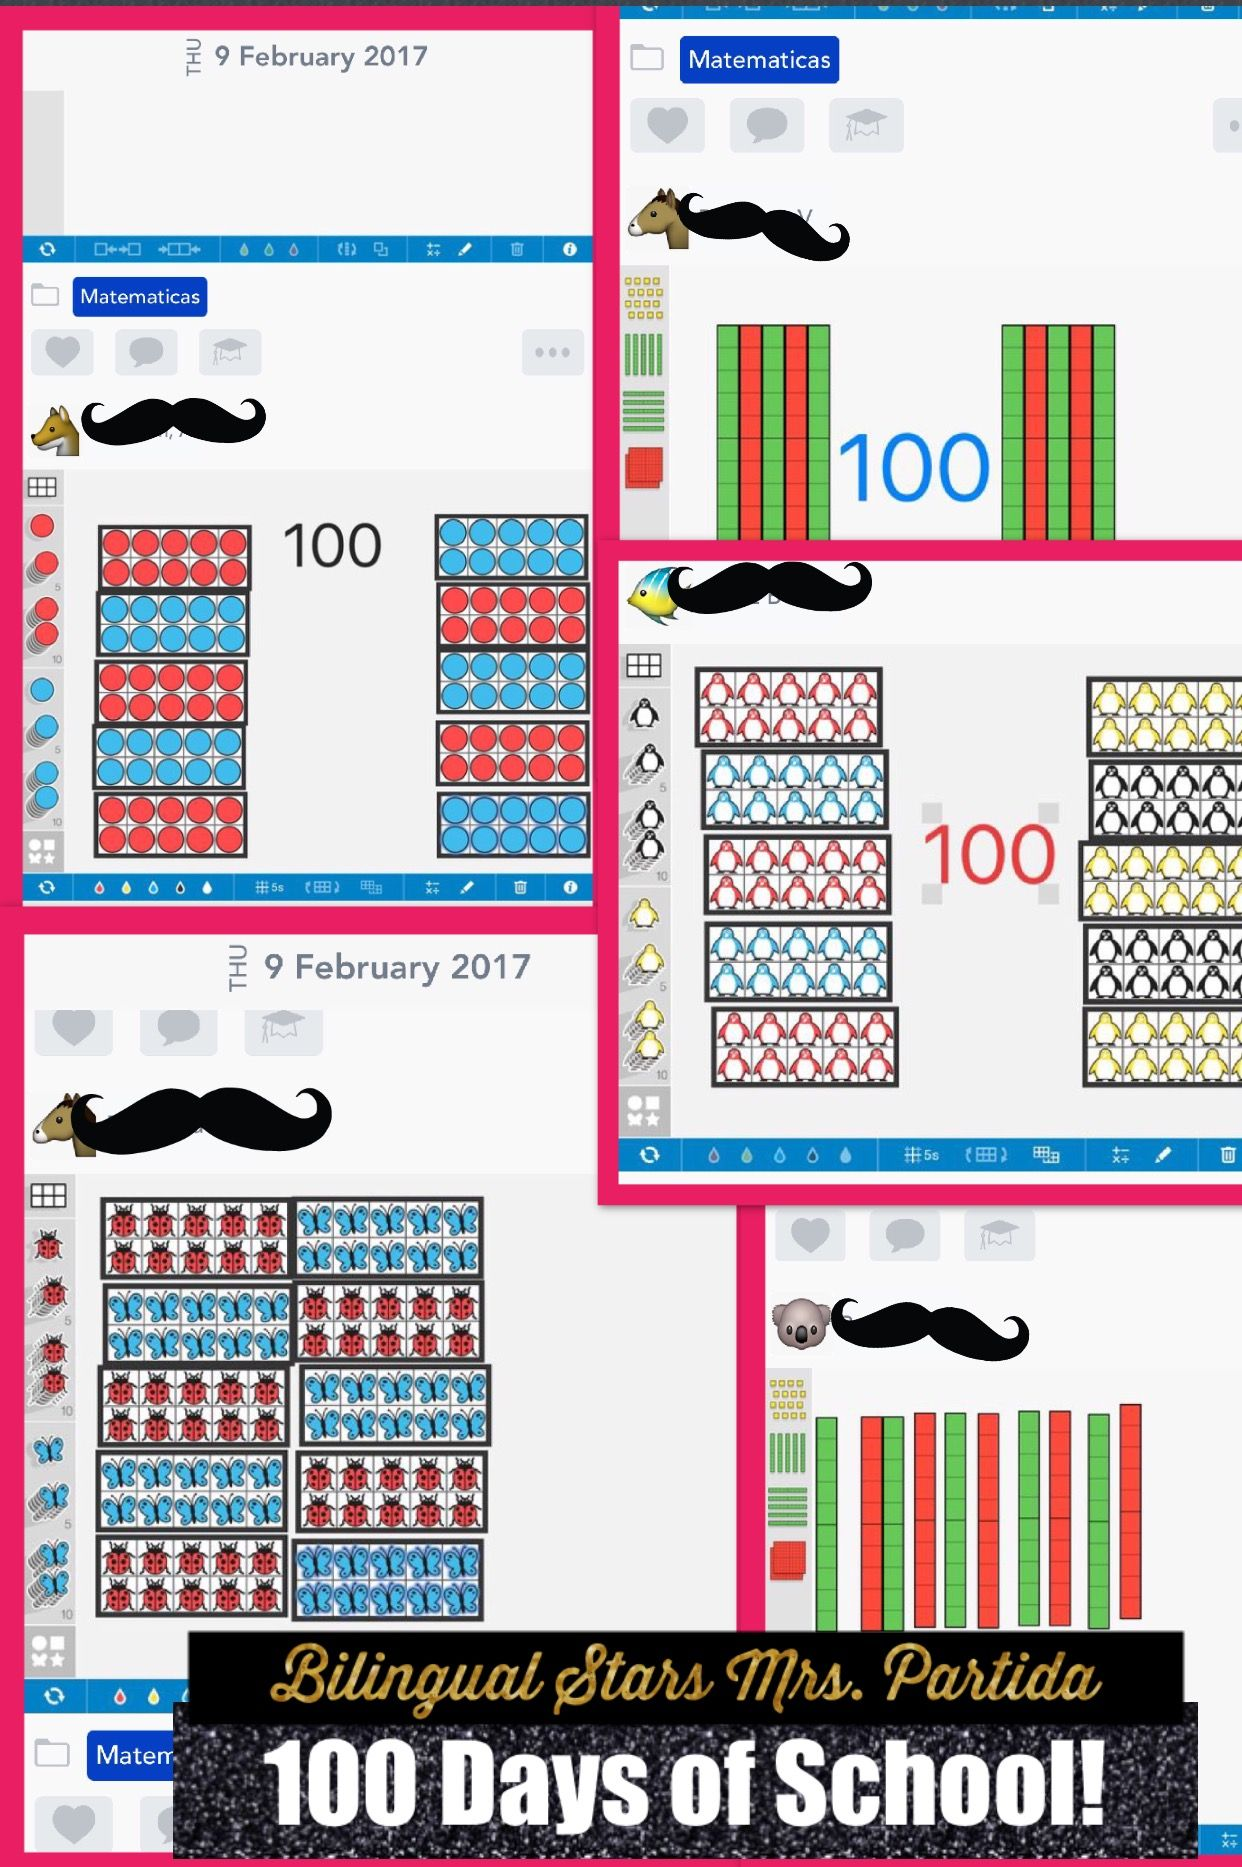 100 Days of School!  We used Number Frames, Number Pieces, and Seesaw to show 100! #bilingualstars1 #bilingualstarsmrspartida #kindergarten #lucypartida